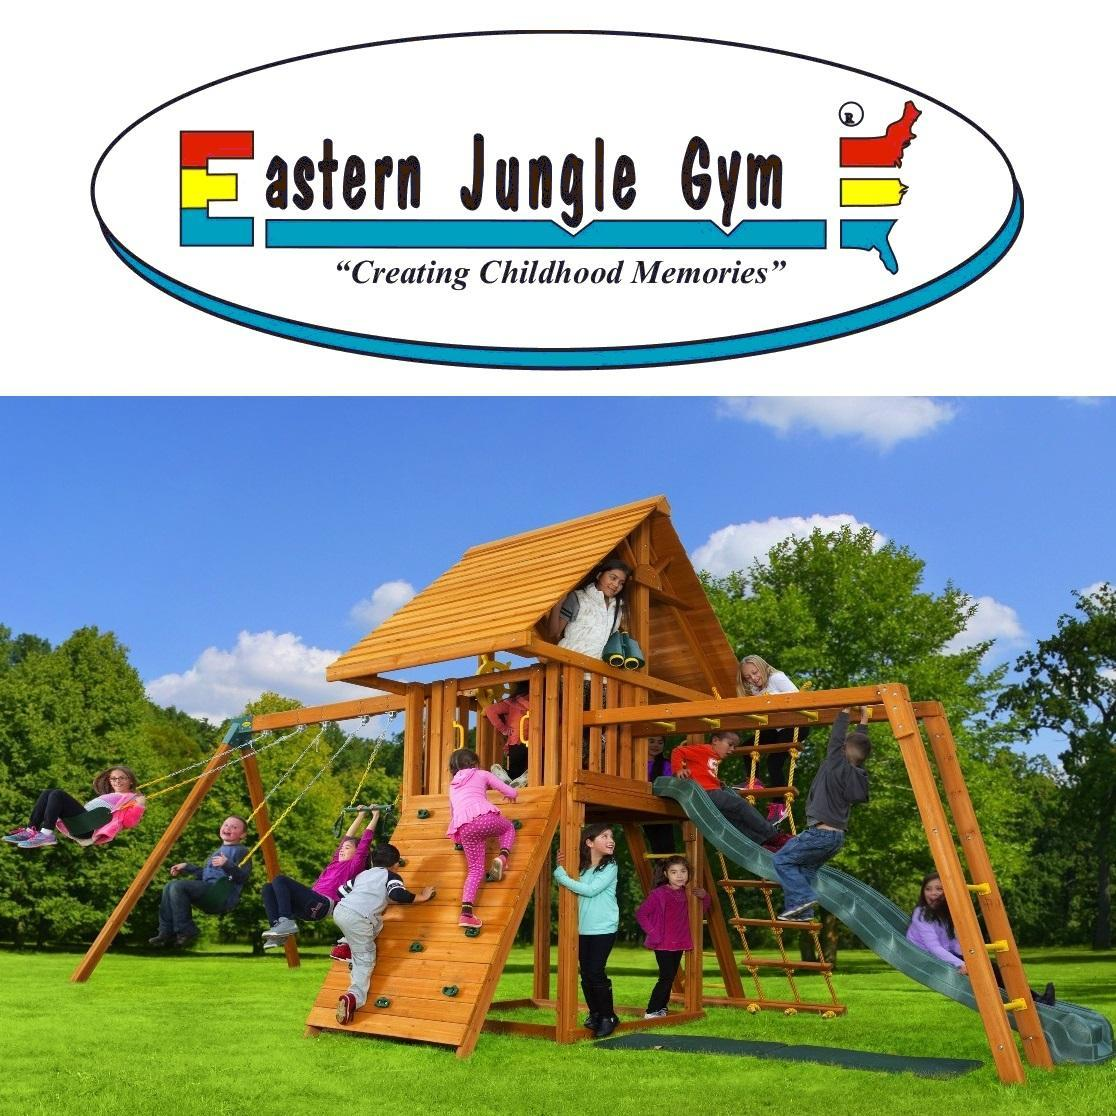 Amazon.com: eastern jungle gym diy swing set hardware kit with easy